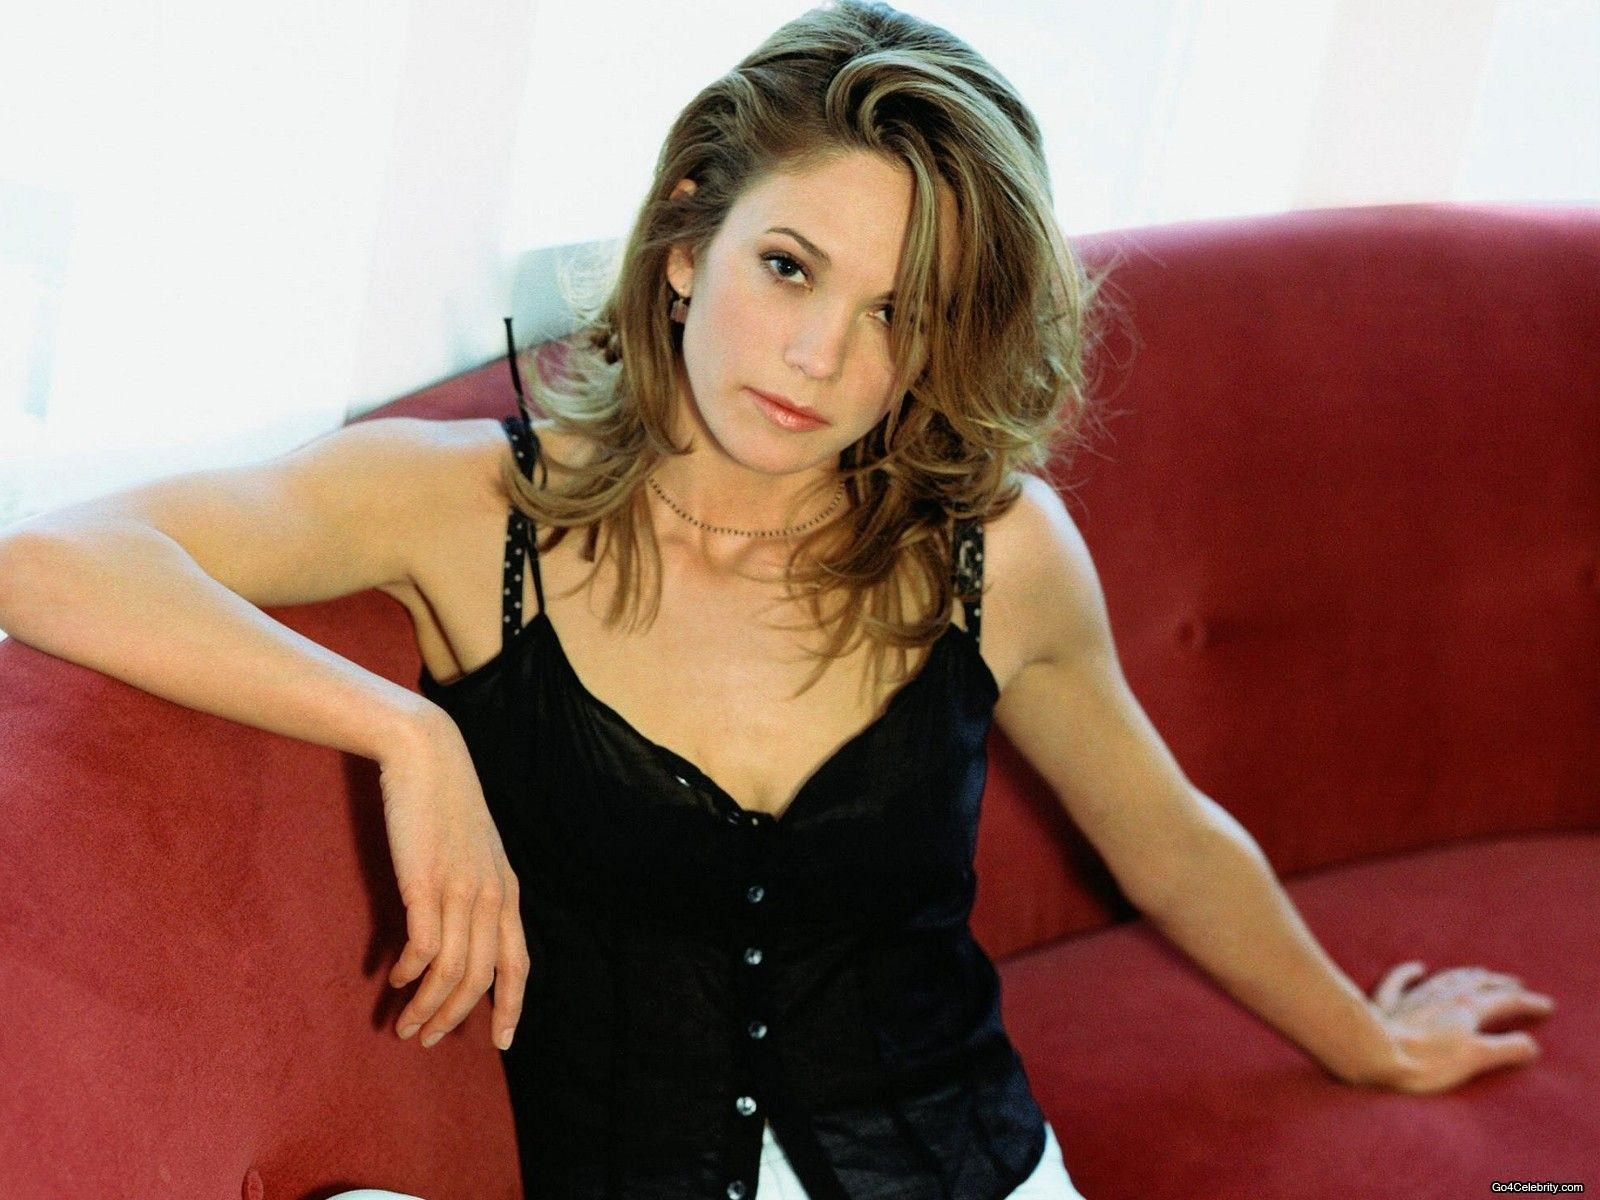 Diane Lane | Known people - famous people news and biographies